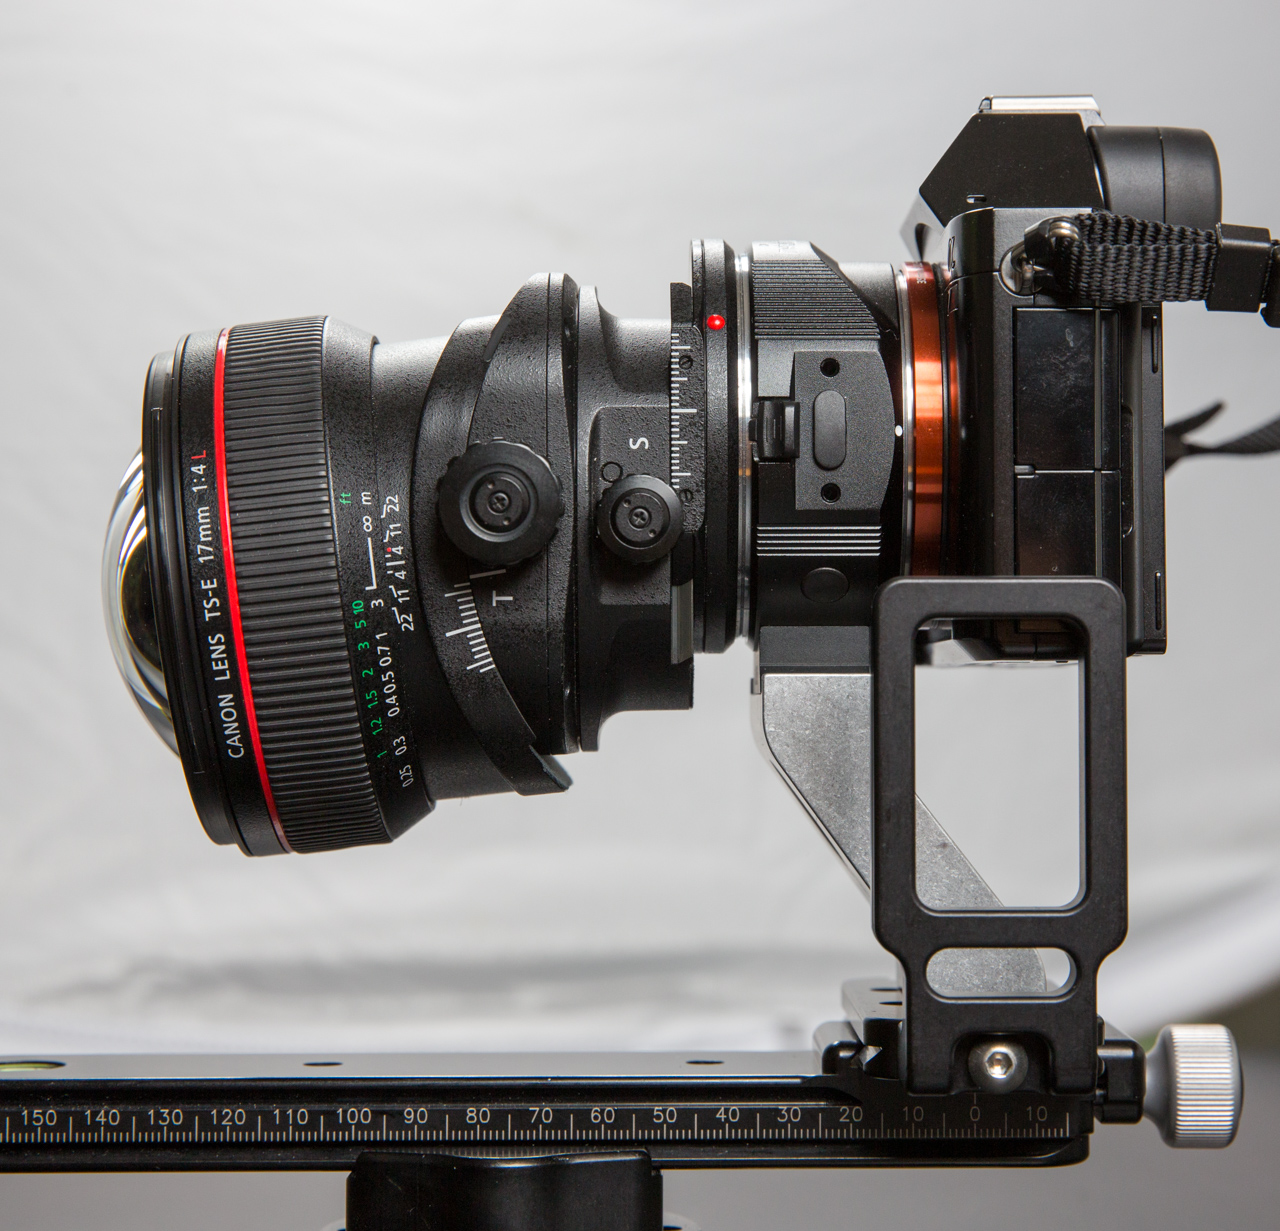 Canon TS-E 17mm f/4 L on SONY a7 via Metabones adapter and Hajnar Foot Assembly prototype.